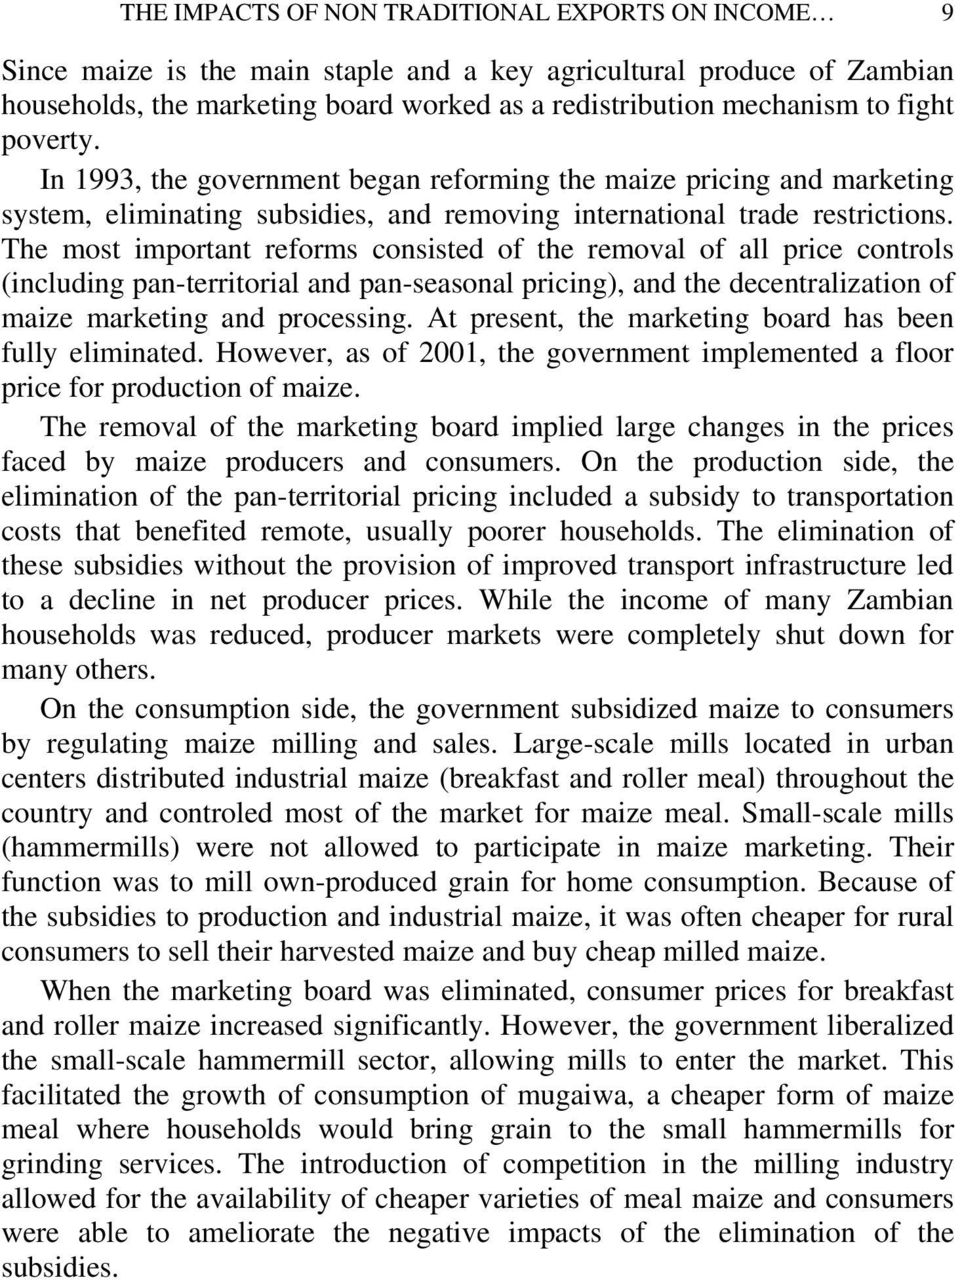 The most important reforms consisted of the removal of all price controls (including pan-territorial and pan-seasonal pricing), and the decentralization of maize marketing and processing.